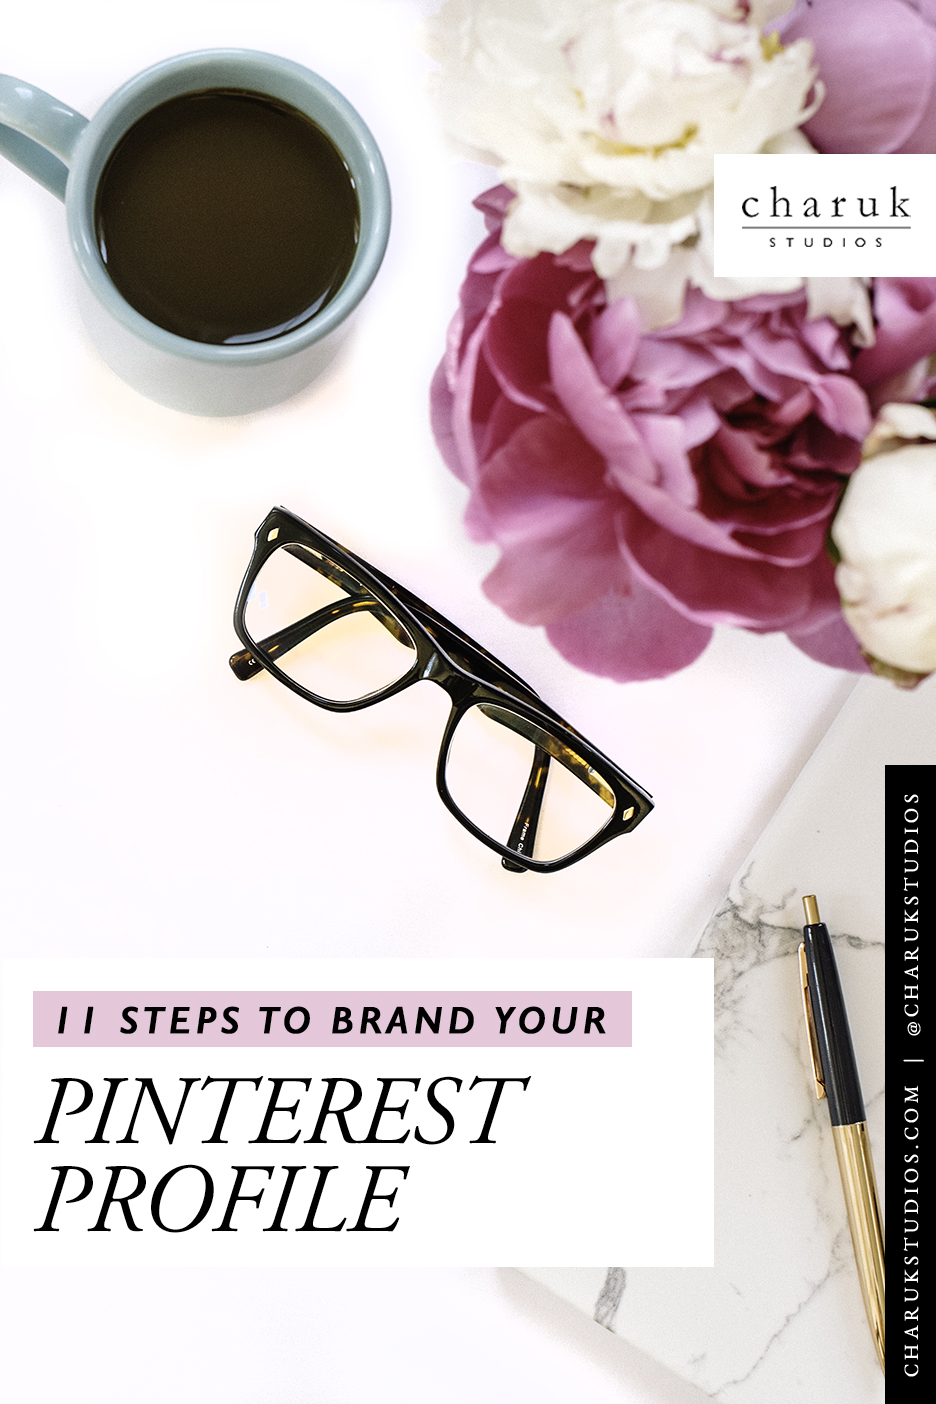 11 Steps to brand your Pinterest profile by Charuk Studios